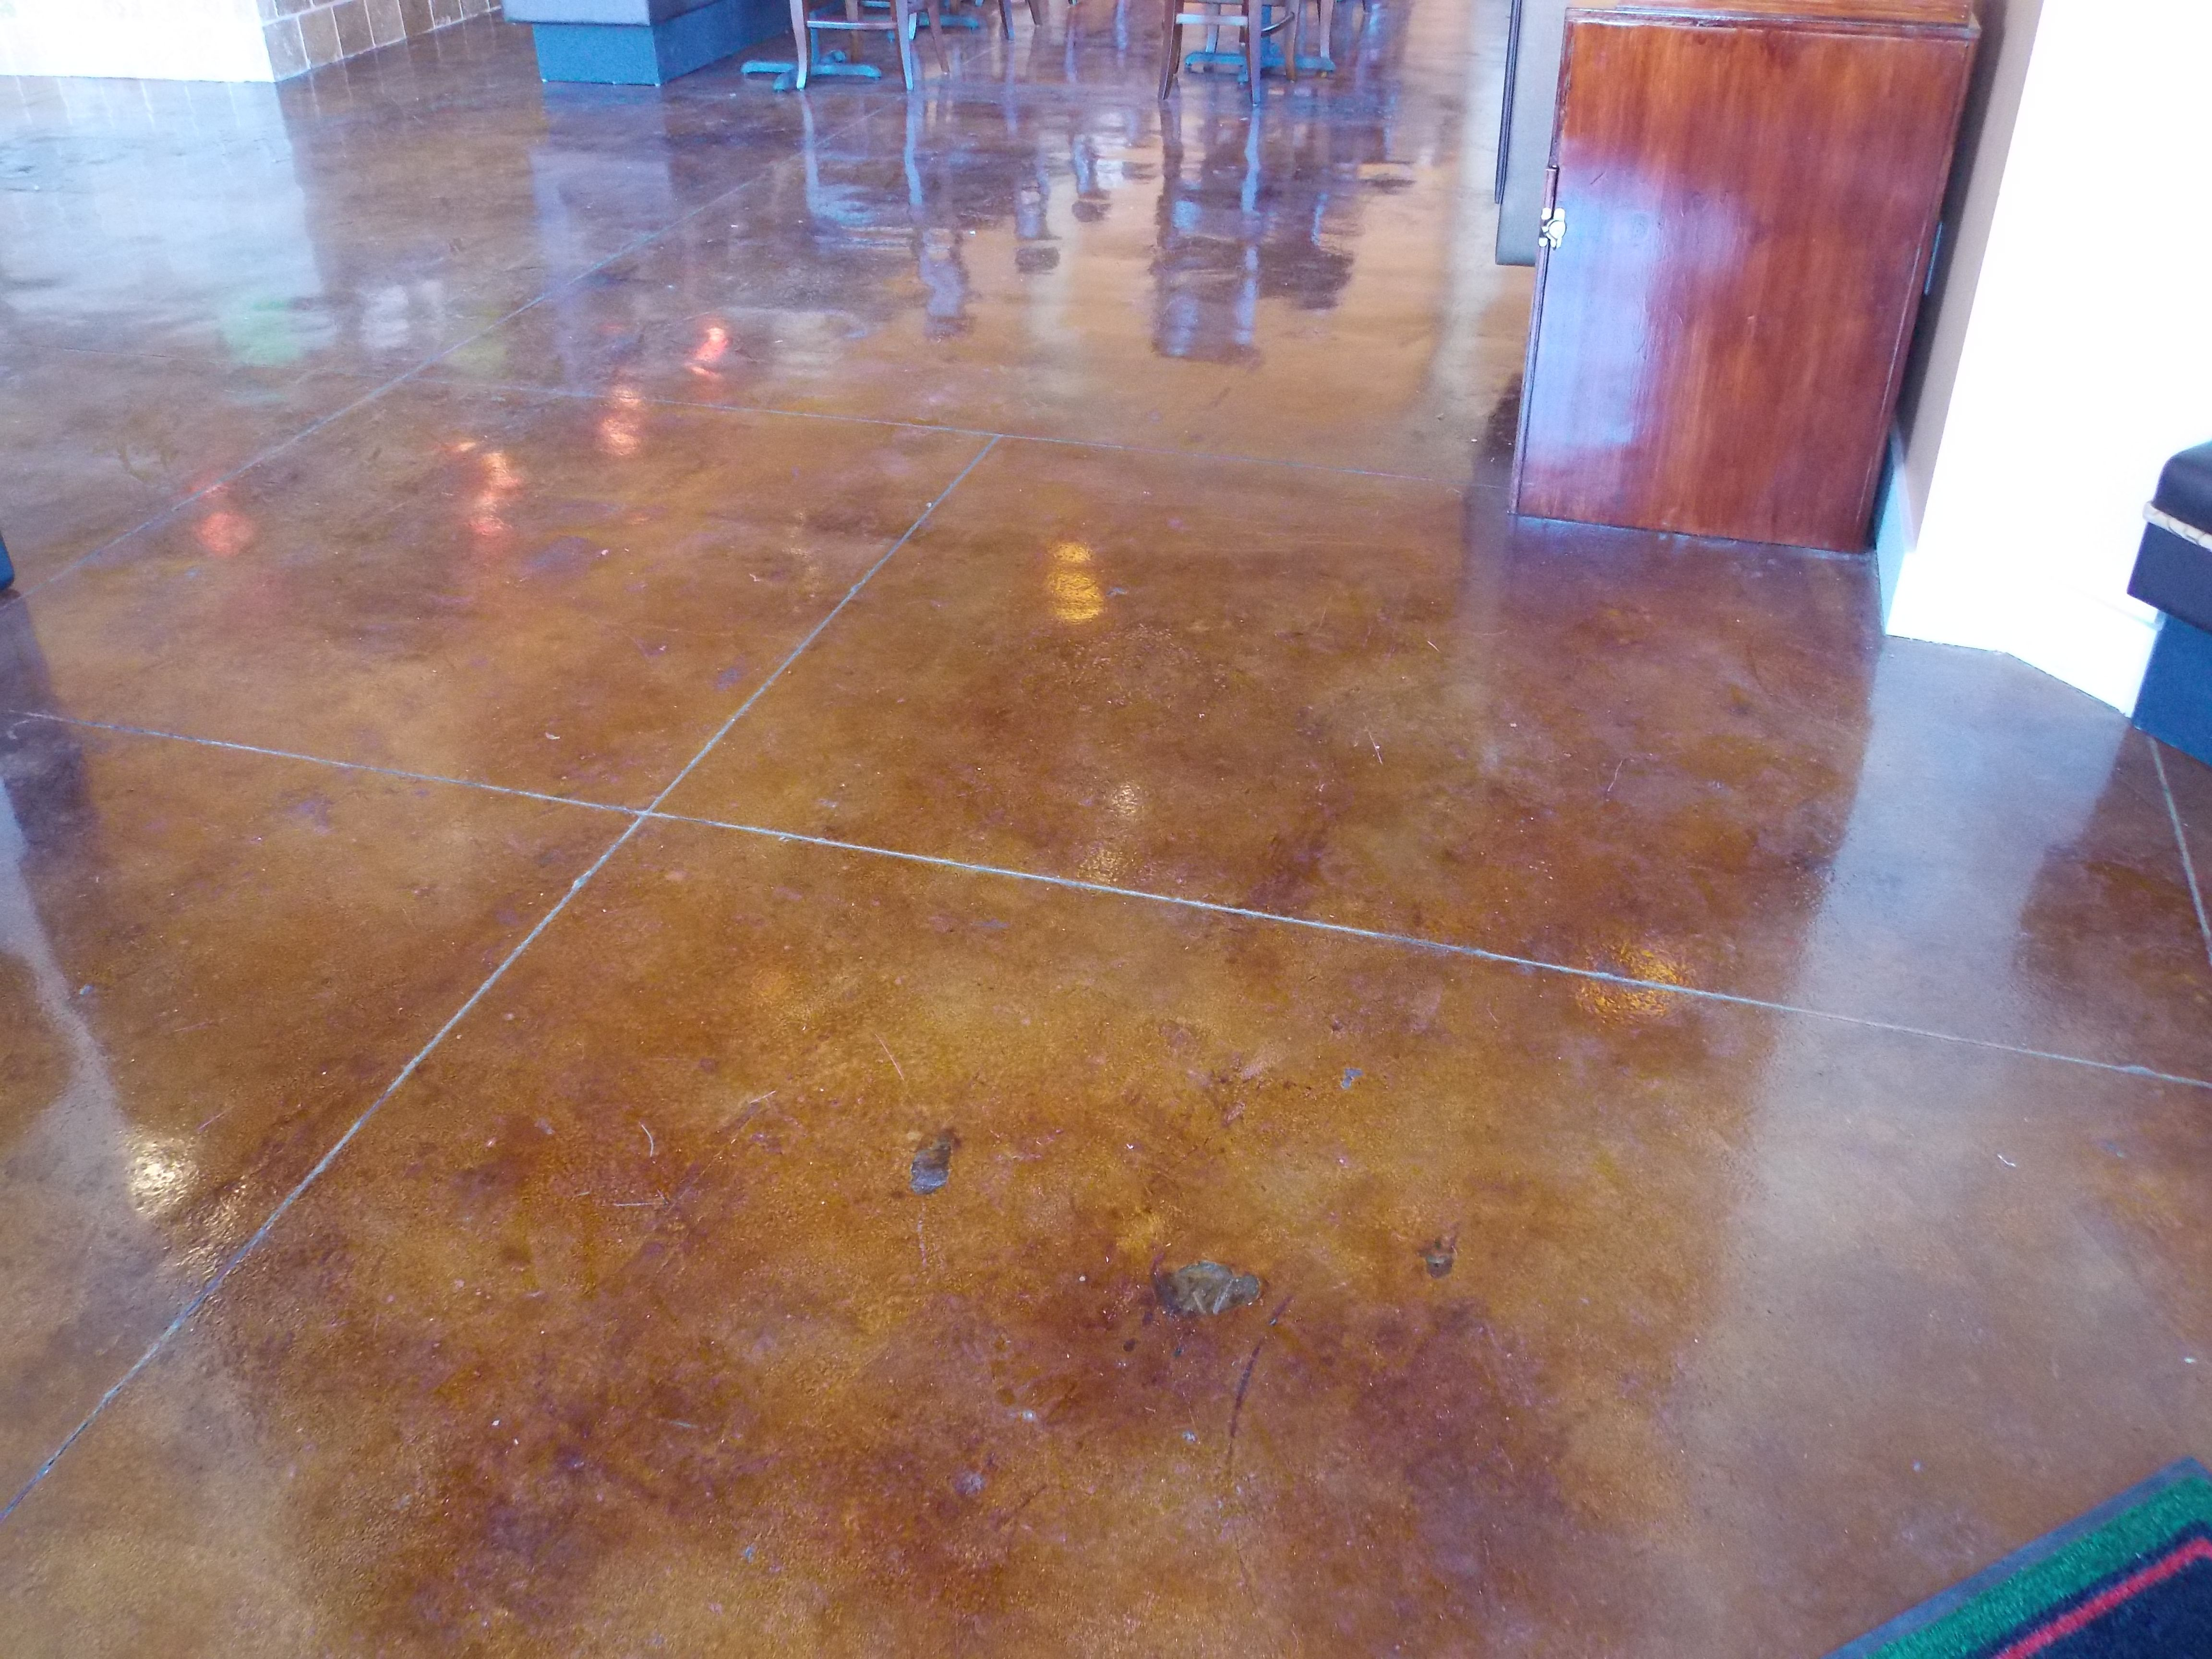 Remodeled mona lisas gourmet pizzarie at the rim stained floor remodeled mona lisas gourmet pizzarie at the rim stained floor ceramic tile custom painting remodeled dailygadgetfo Choice Image